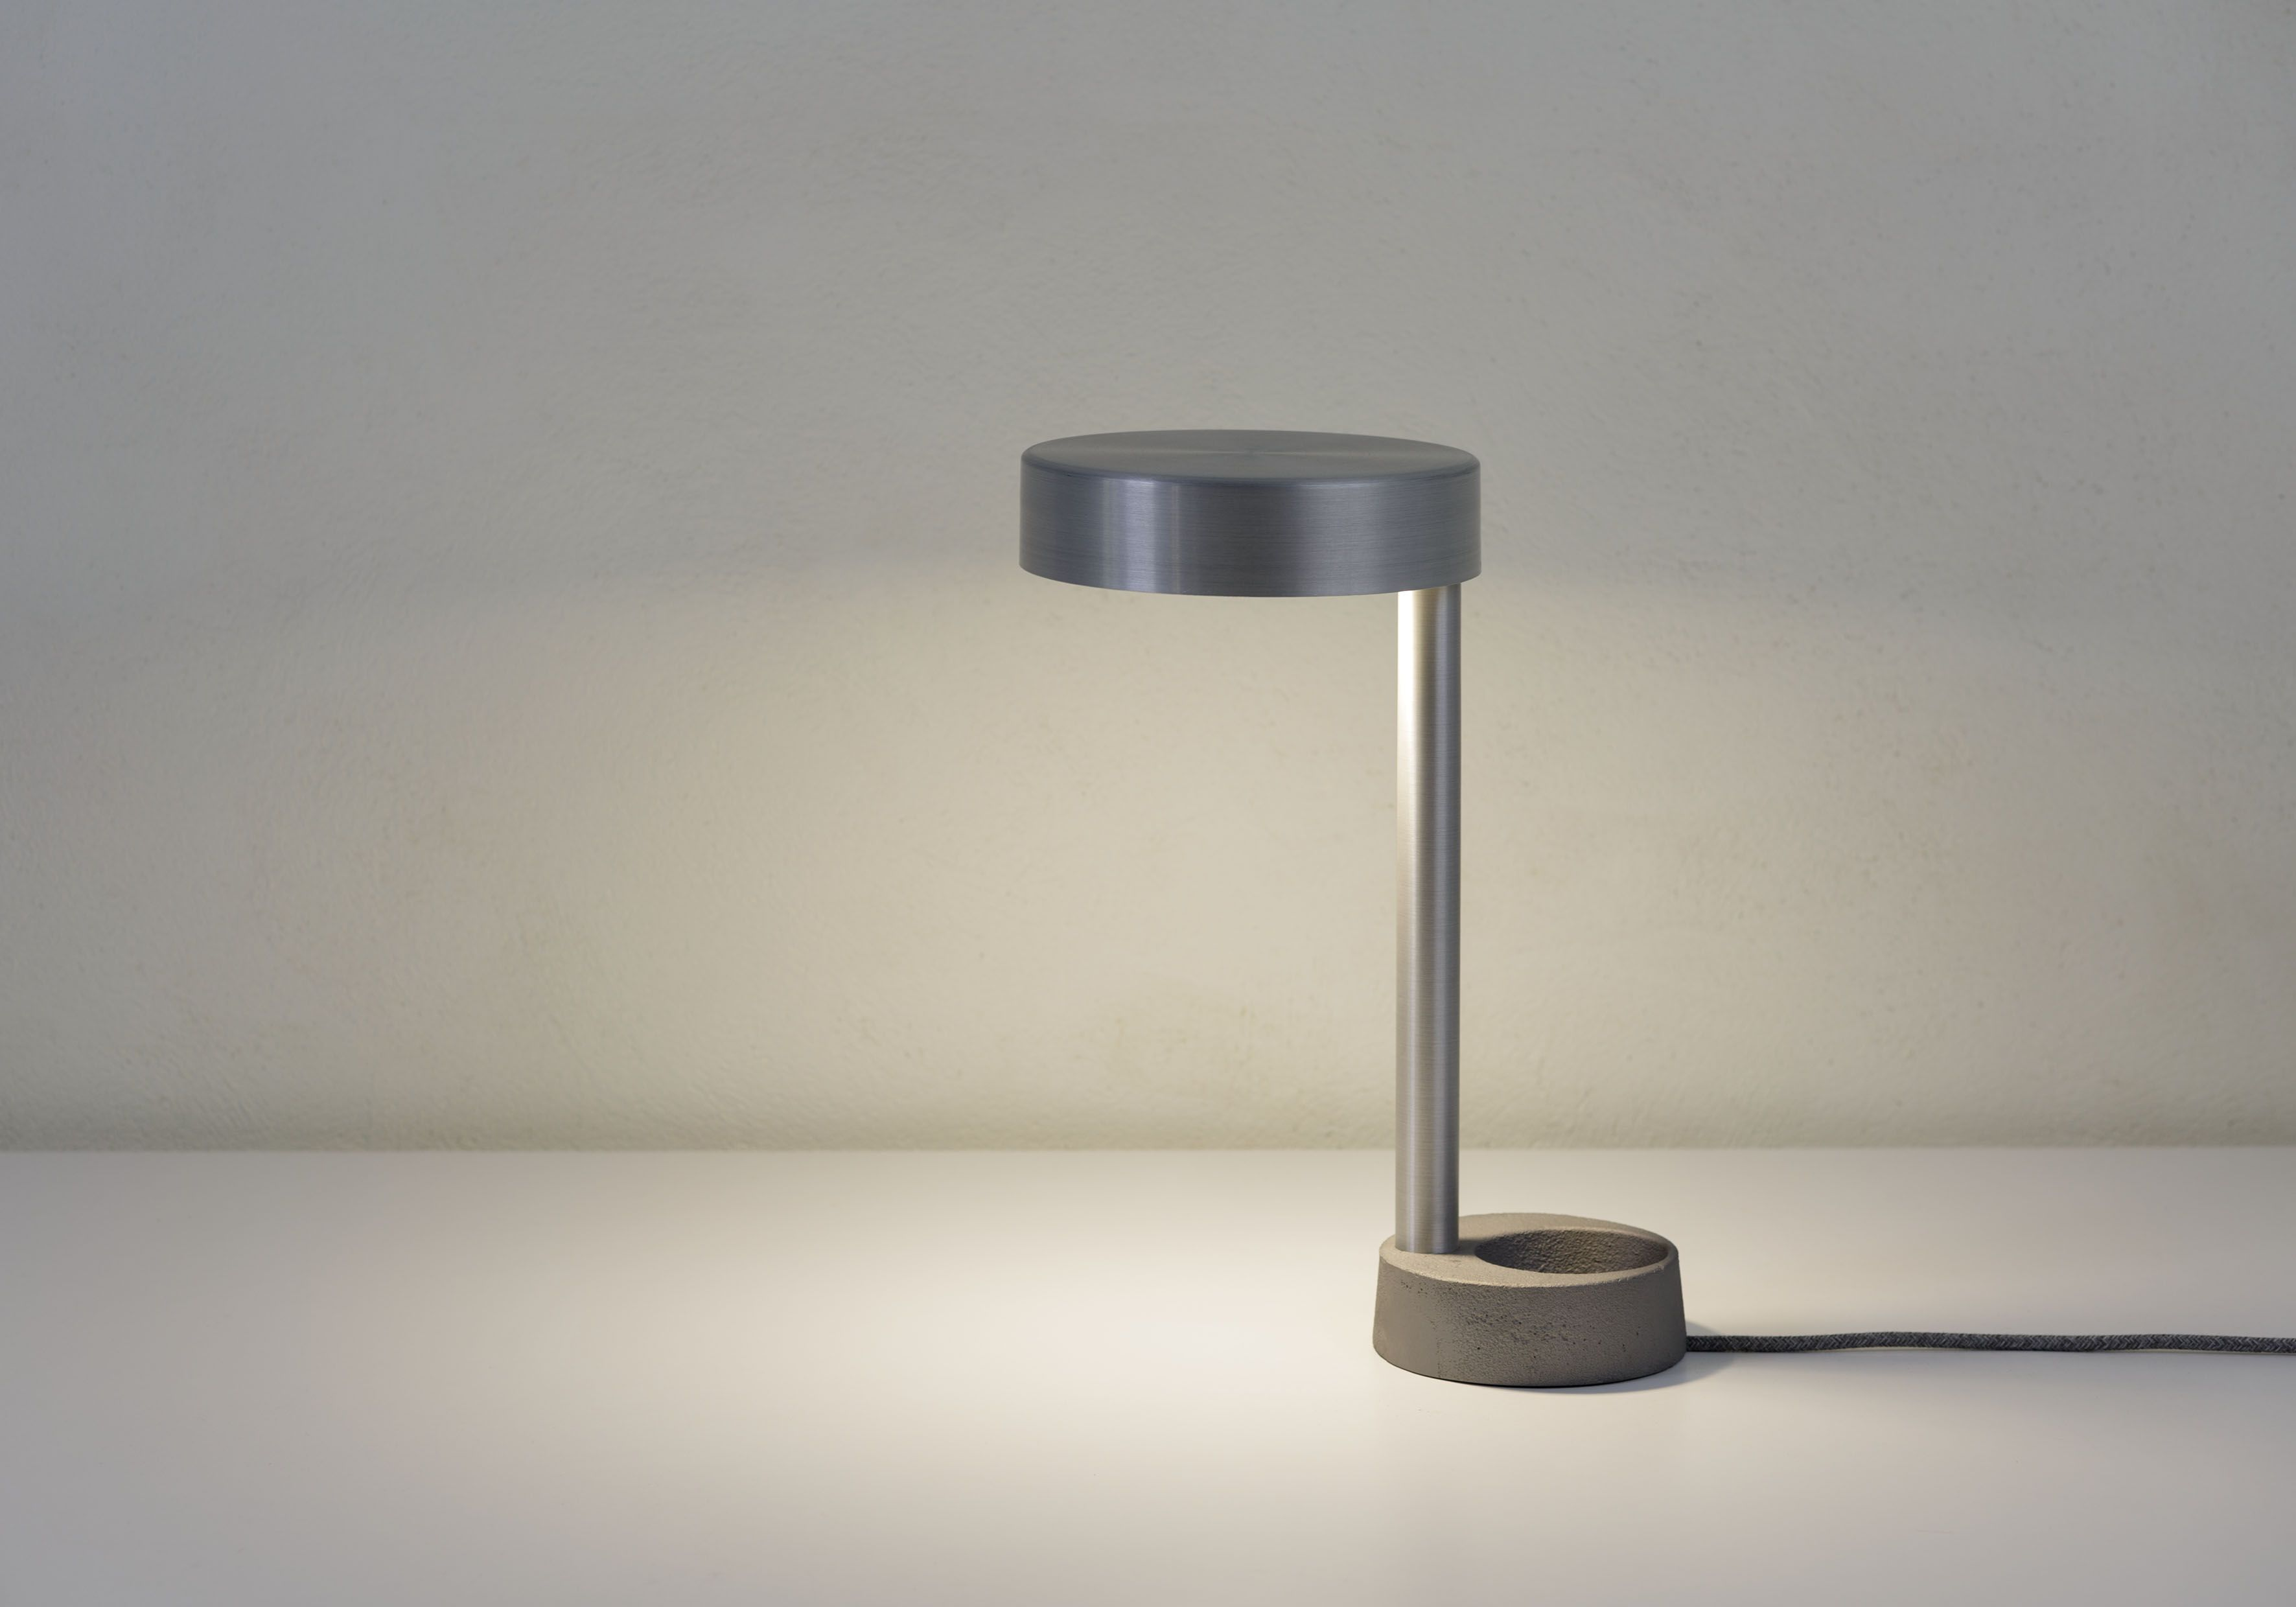 Reading lamp LIGHT. Minimal in form, design and manufacturing. Visually lightweight. Used materials rustic cast iron and smooth aluminum, contrast creates interplay.  Material: cast iron, aluminum, LED bulb. Dimensions: 320 X H 500 mm Weight: 4 kg Technical: 1 x LED bulb 4W - 7W Materials: Cast iron, aluminum, 1,5 meter textile electrical wire.